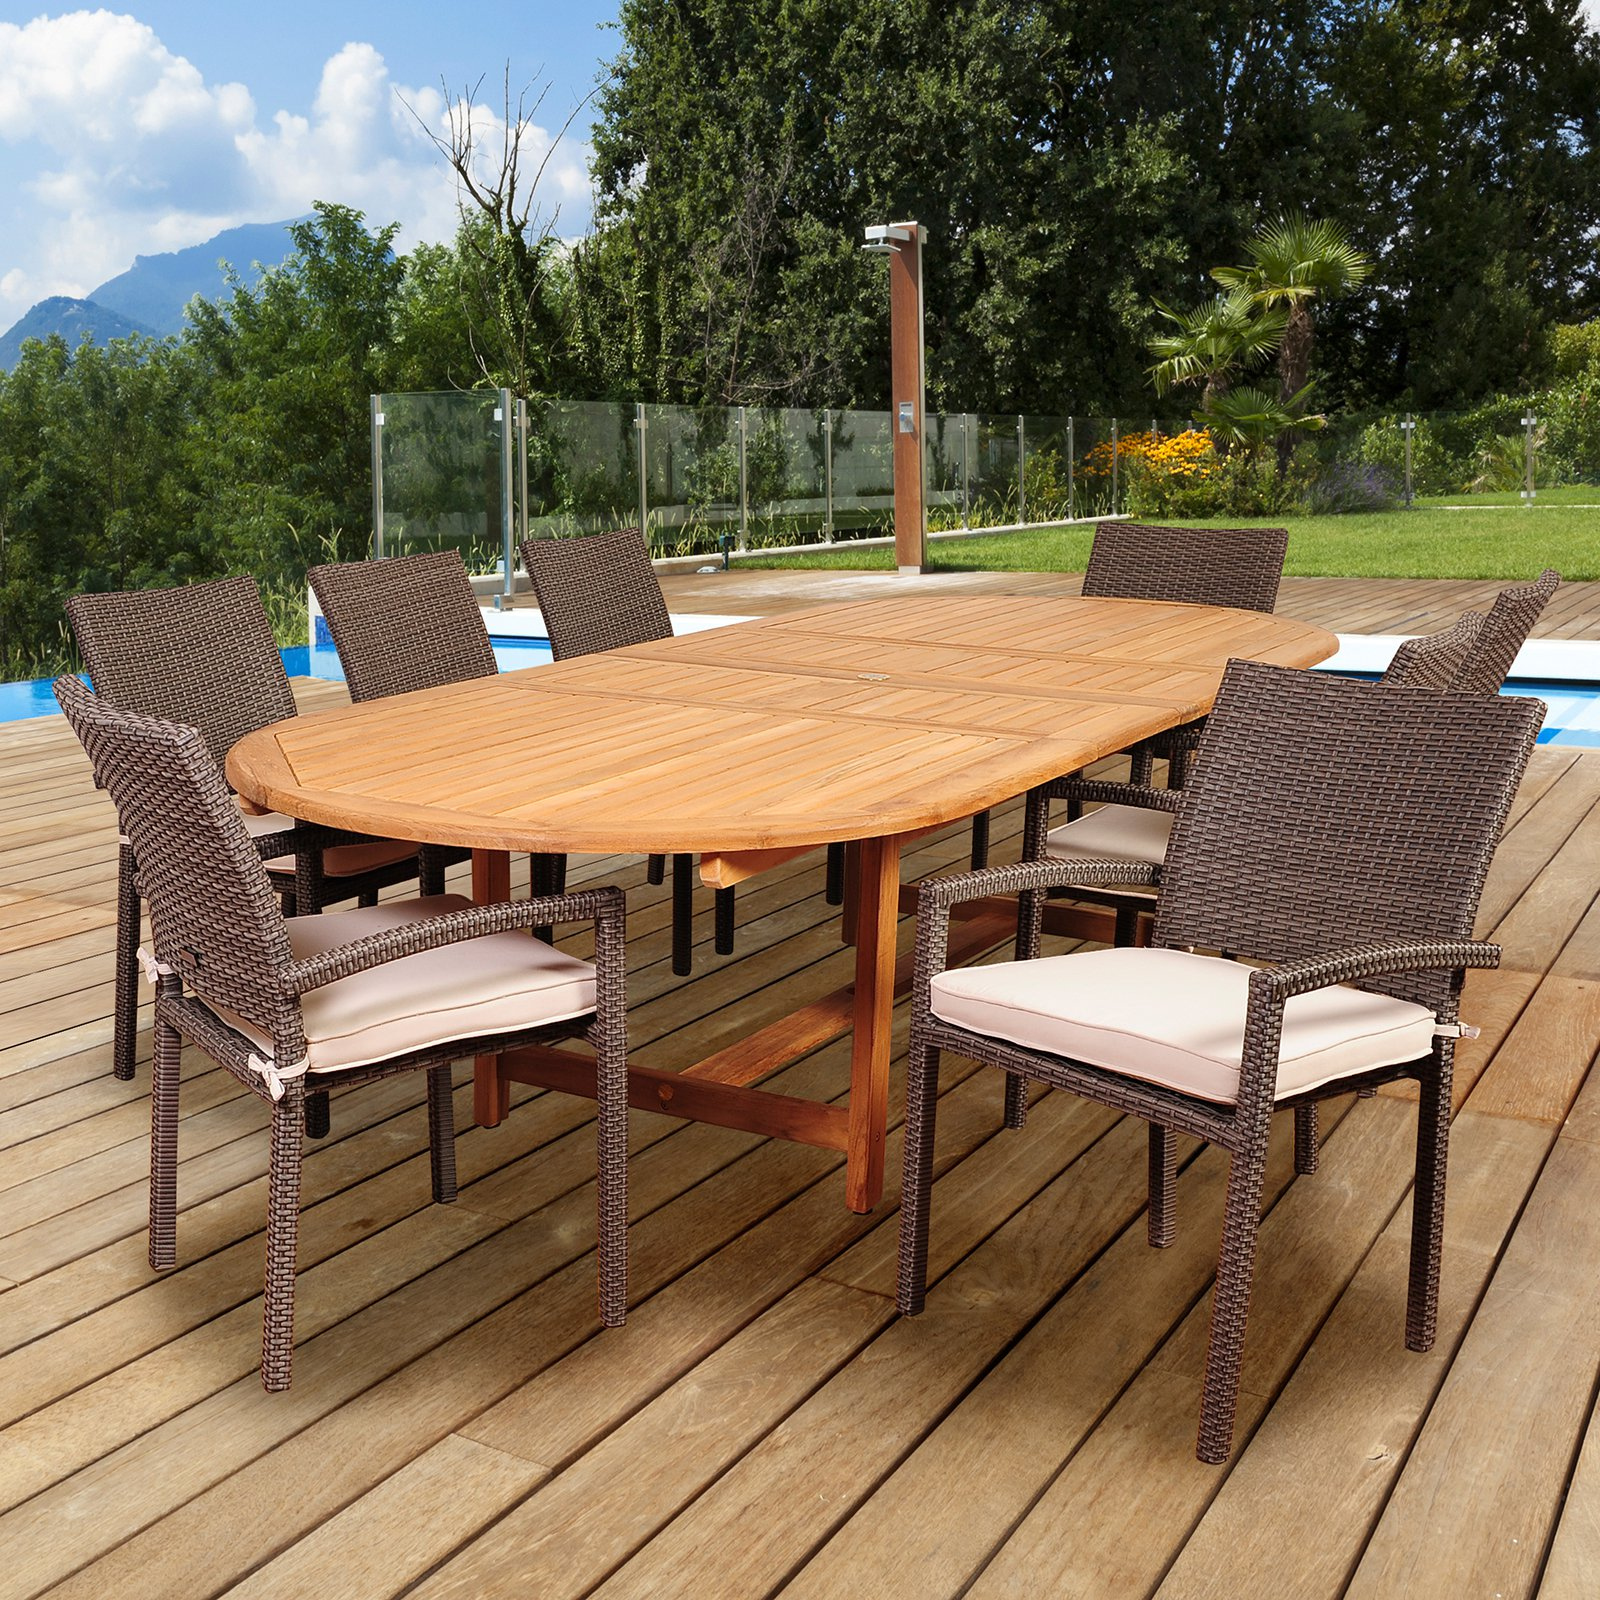 Amazonia Indianapolis 9 Piece Double Extendable Dining Set with Cushions